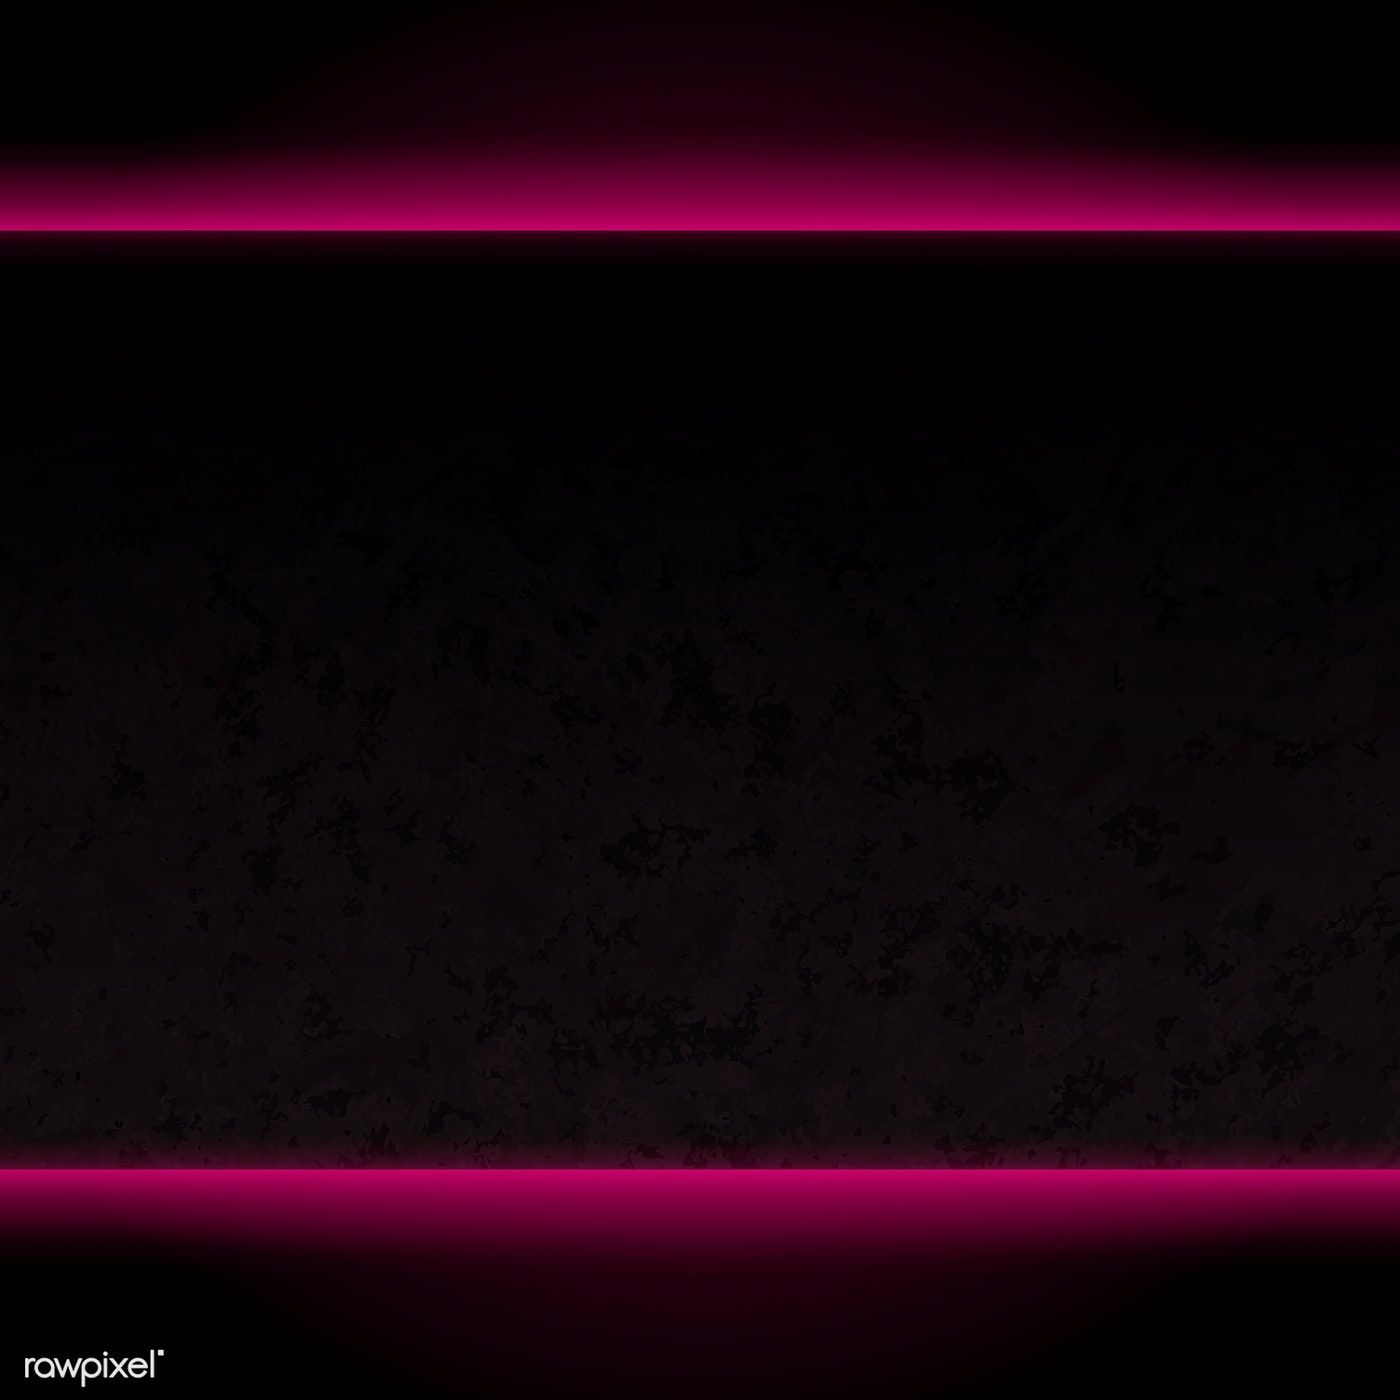 Download Premium Vector Of Pink Glowing Lines On Dark Background Vector Dark Backgrounds Desktop Background Pictures Background